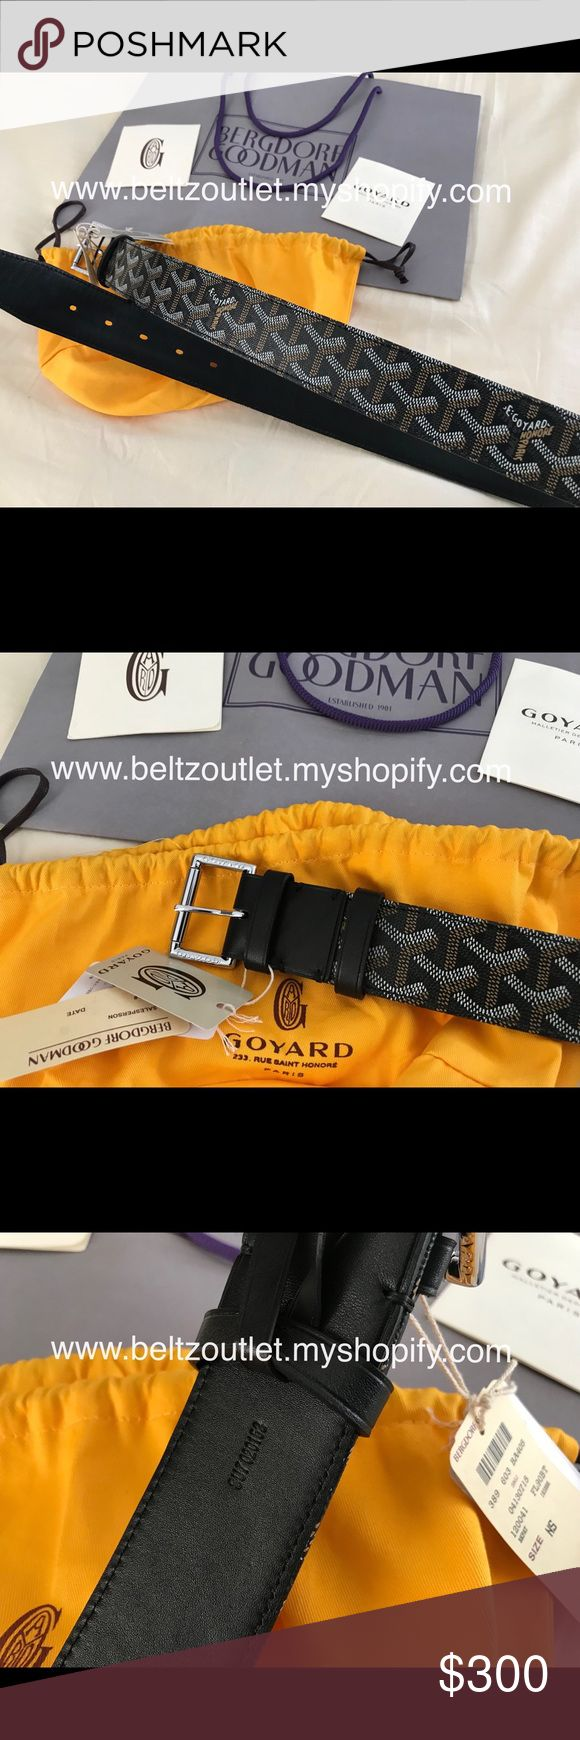 Sale $145 black monogram Goyard belt Black monogram Goyard belt. Comes with dust bag and tags. Sizes 90cm-115cm in stock. Best prices and quality guaranteed. Shop with confidence. 100% Satisfaction Guaranteed. Accessories Belts